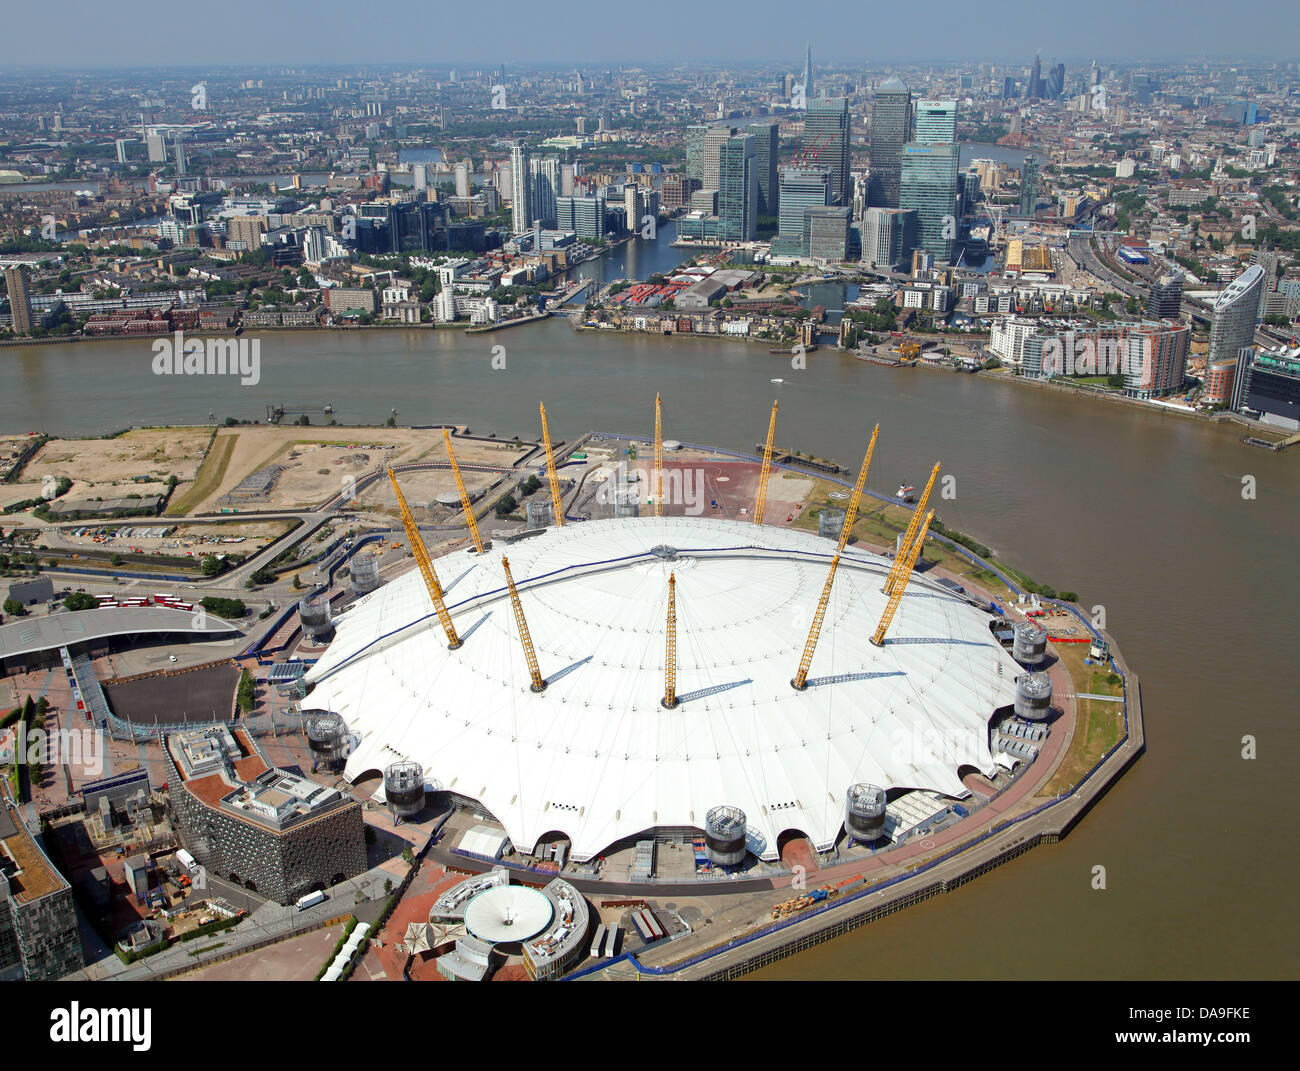 aerial view of the O2 Arena, Millennium Dome, London with Canary Wharf in the background Stock Photo